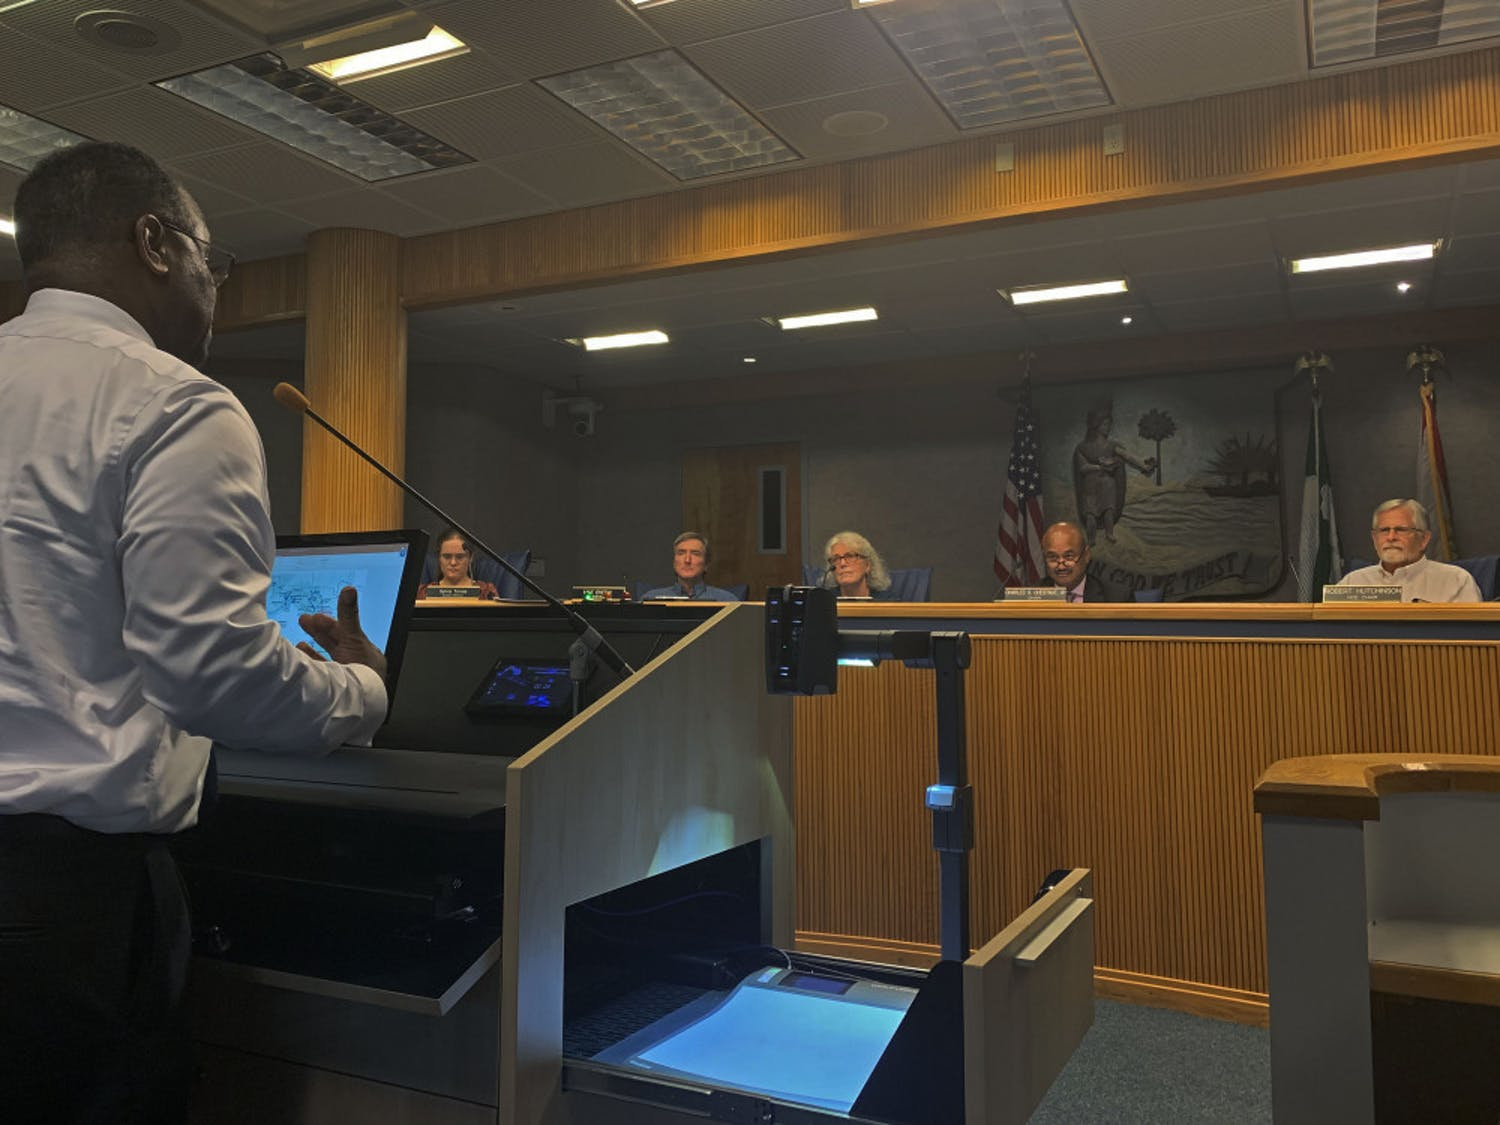 James McKnight, a 62-year-old Gainesville resident, speaks to county commissioners during public comment at a meeting on Tuesday evening. McKnight and his neighbors spoke about the lack of road maintenance at NE 27th Avenue in Northeast Gainesville.